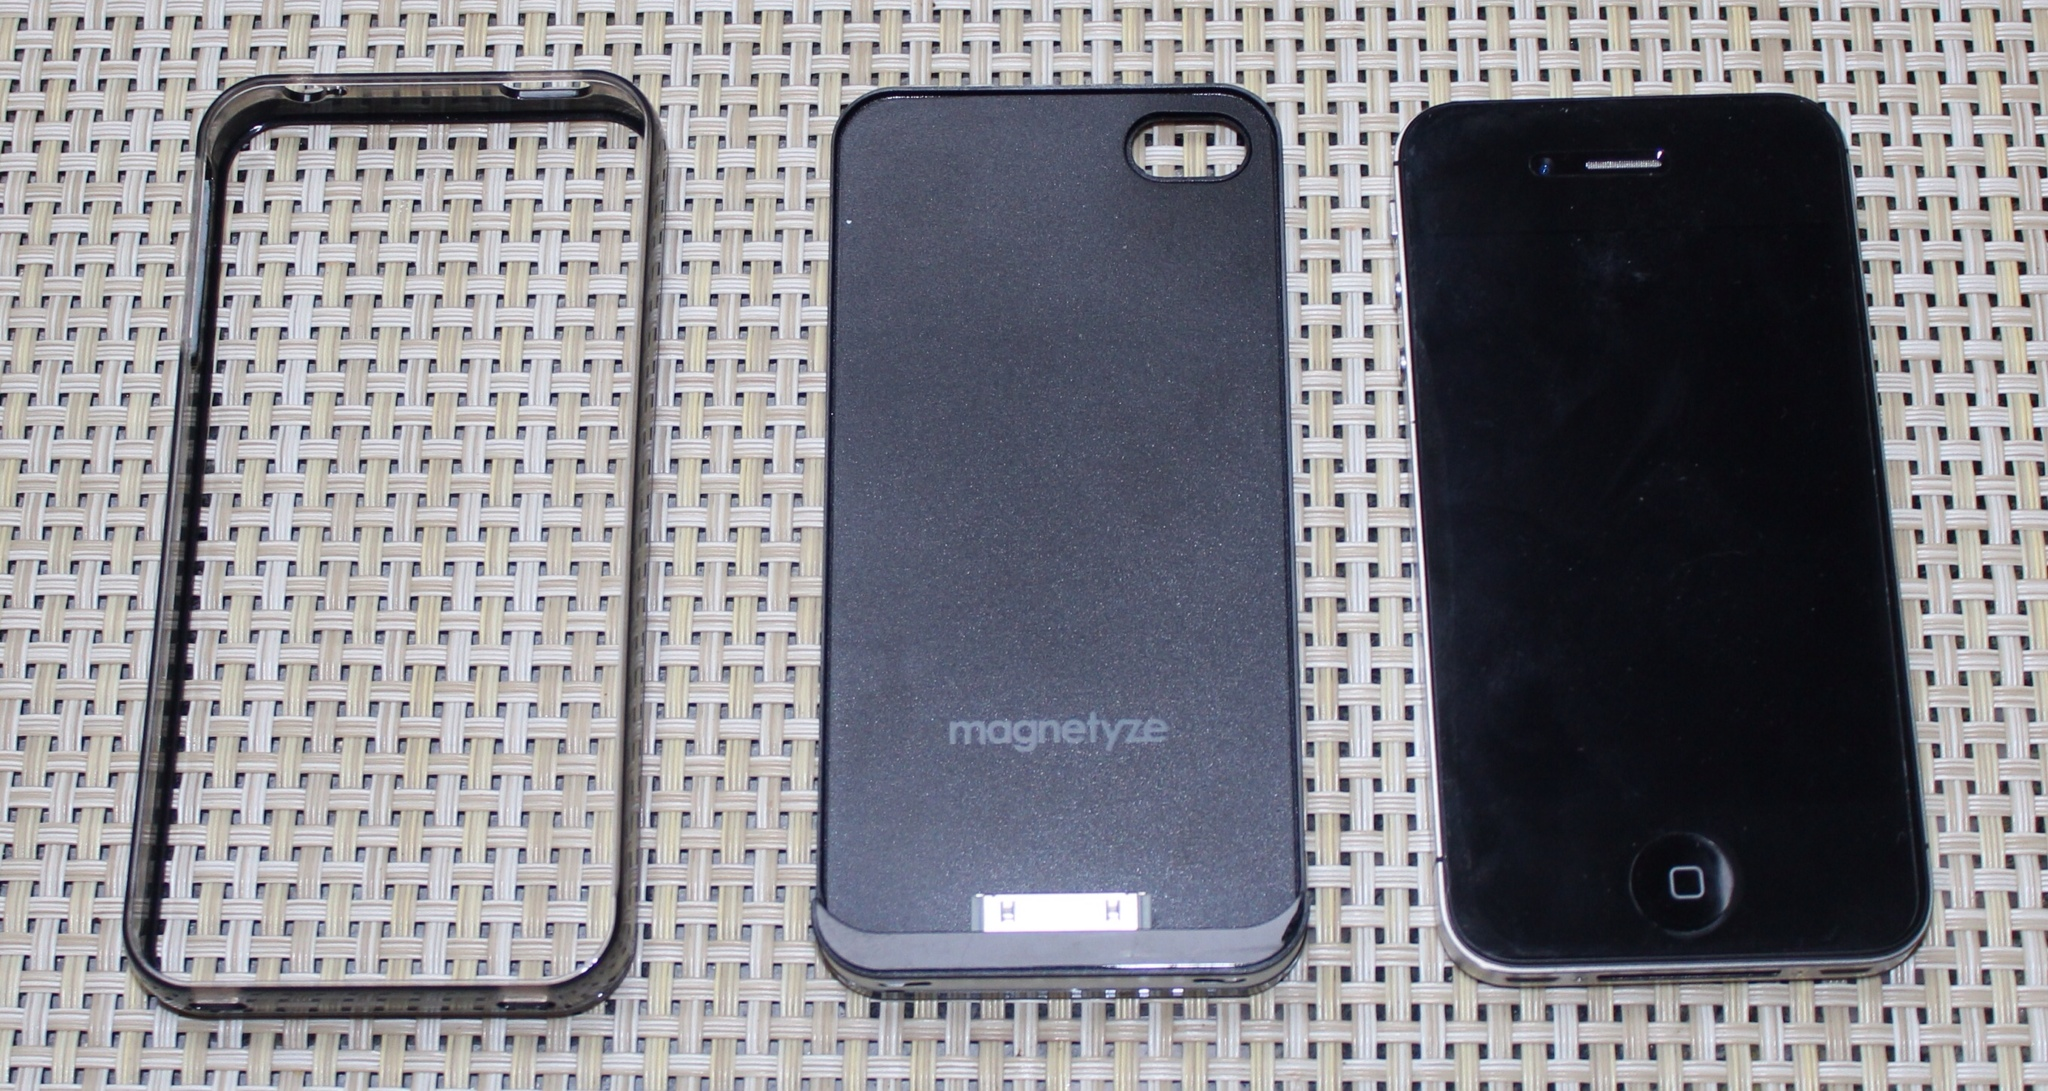 Magnetyze System for iPhone 4S Review